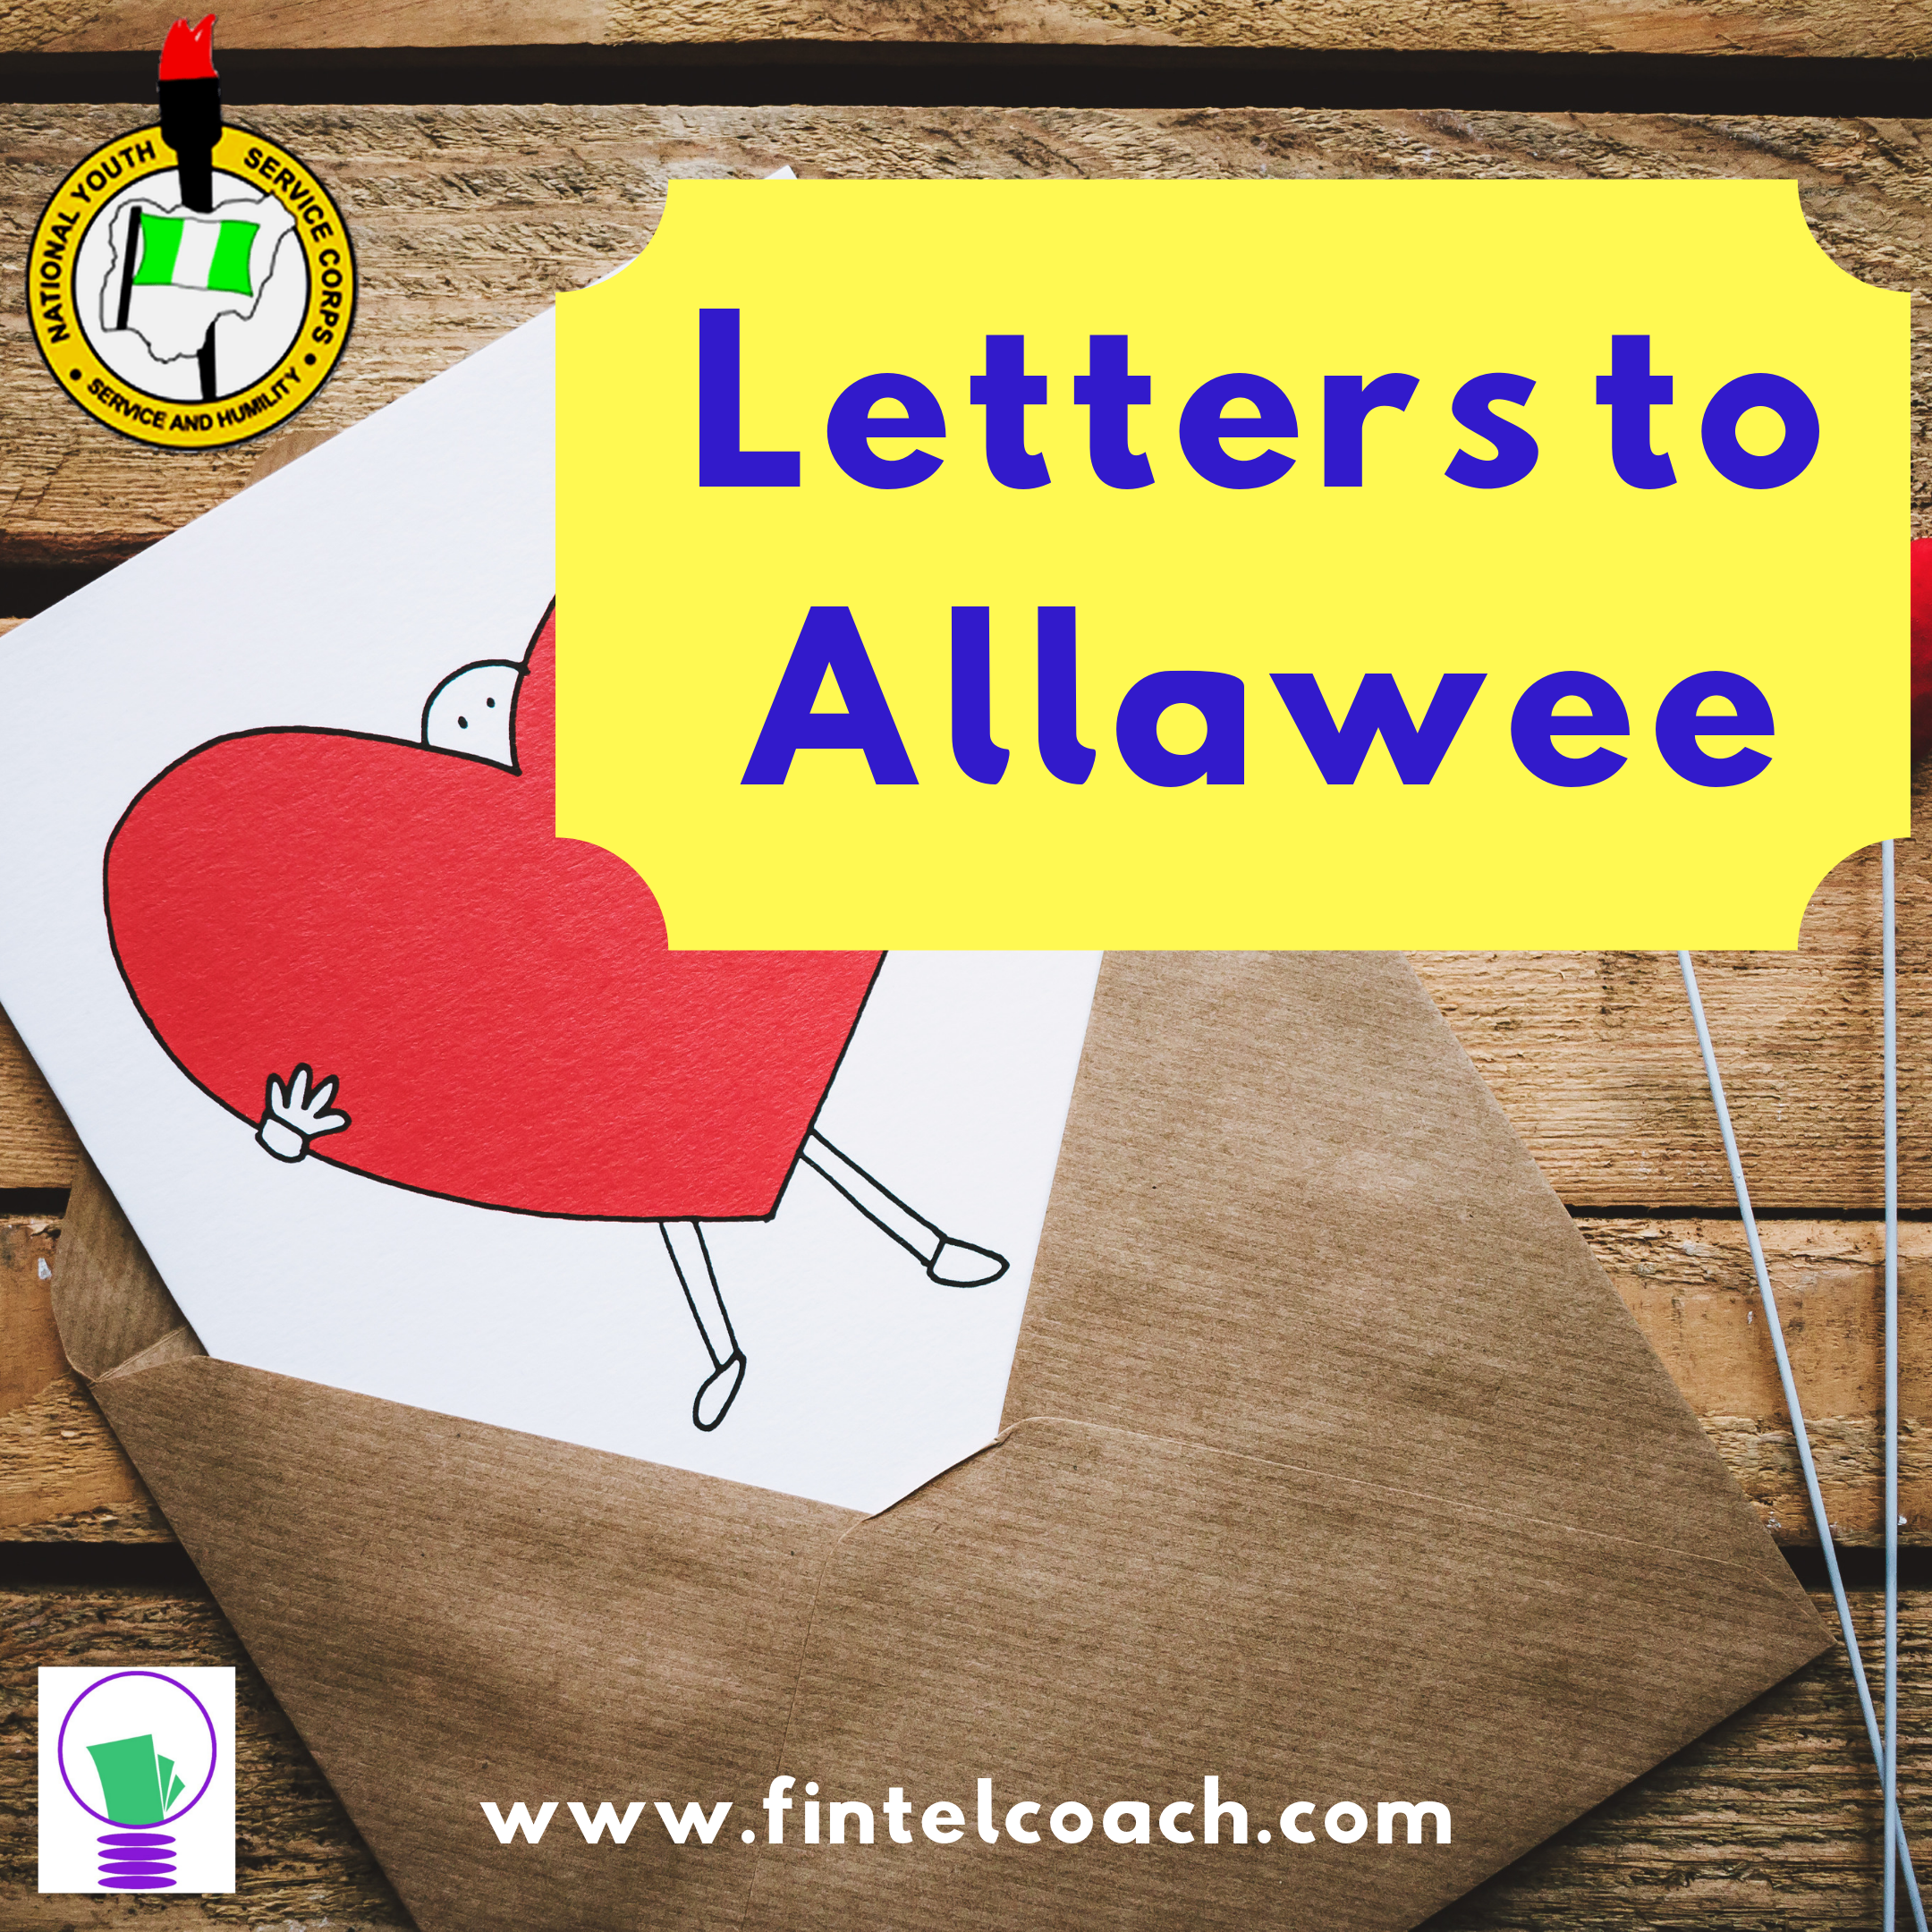 Letters to Allawee